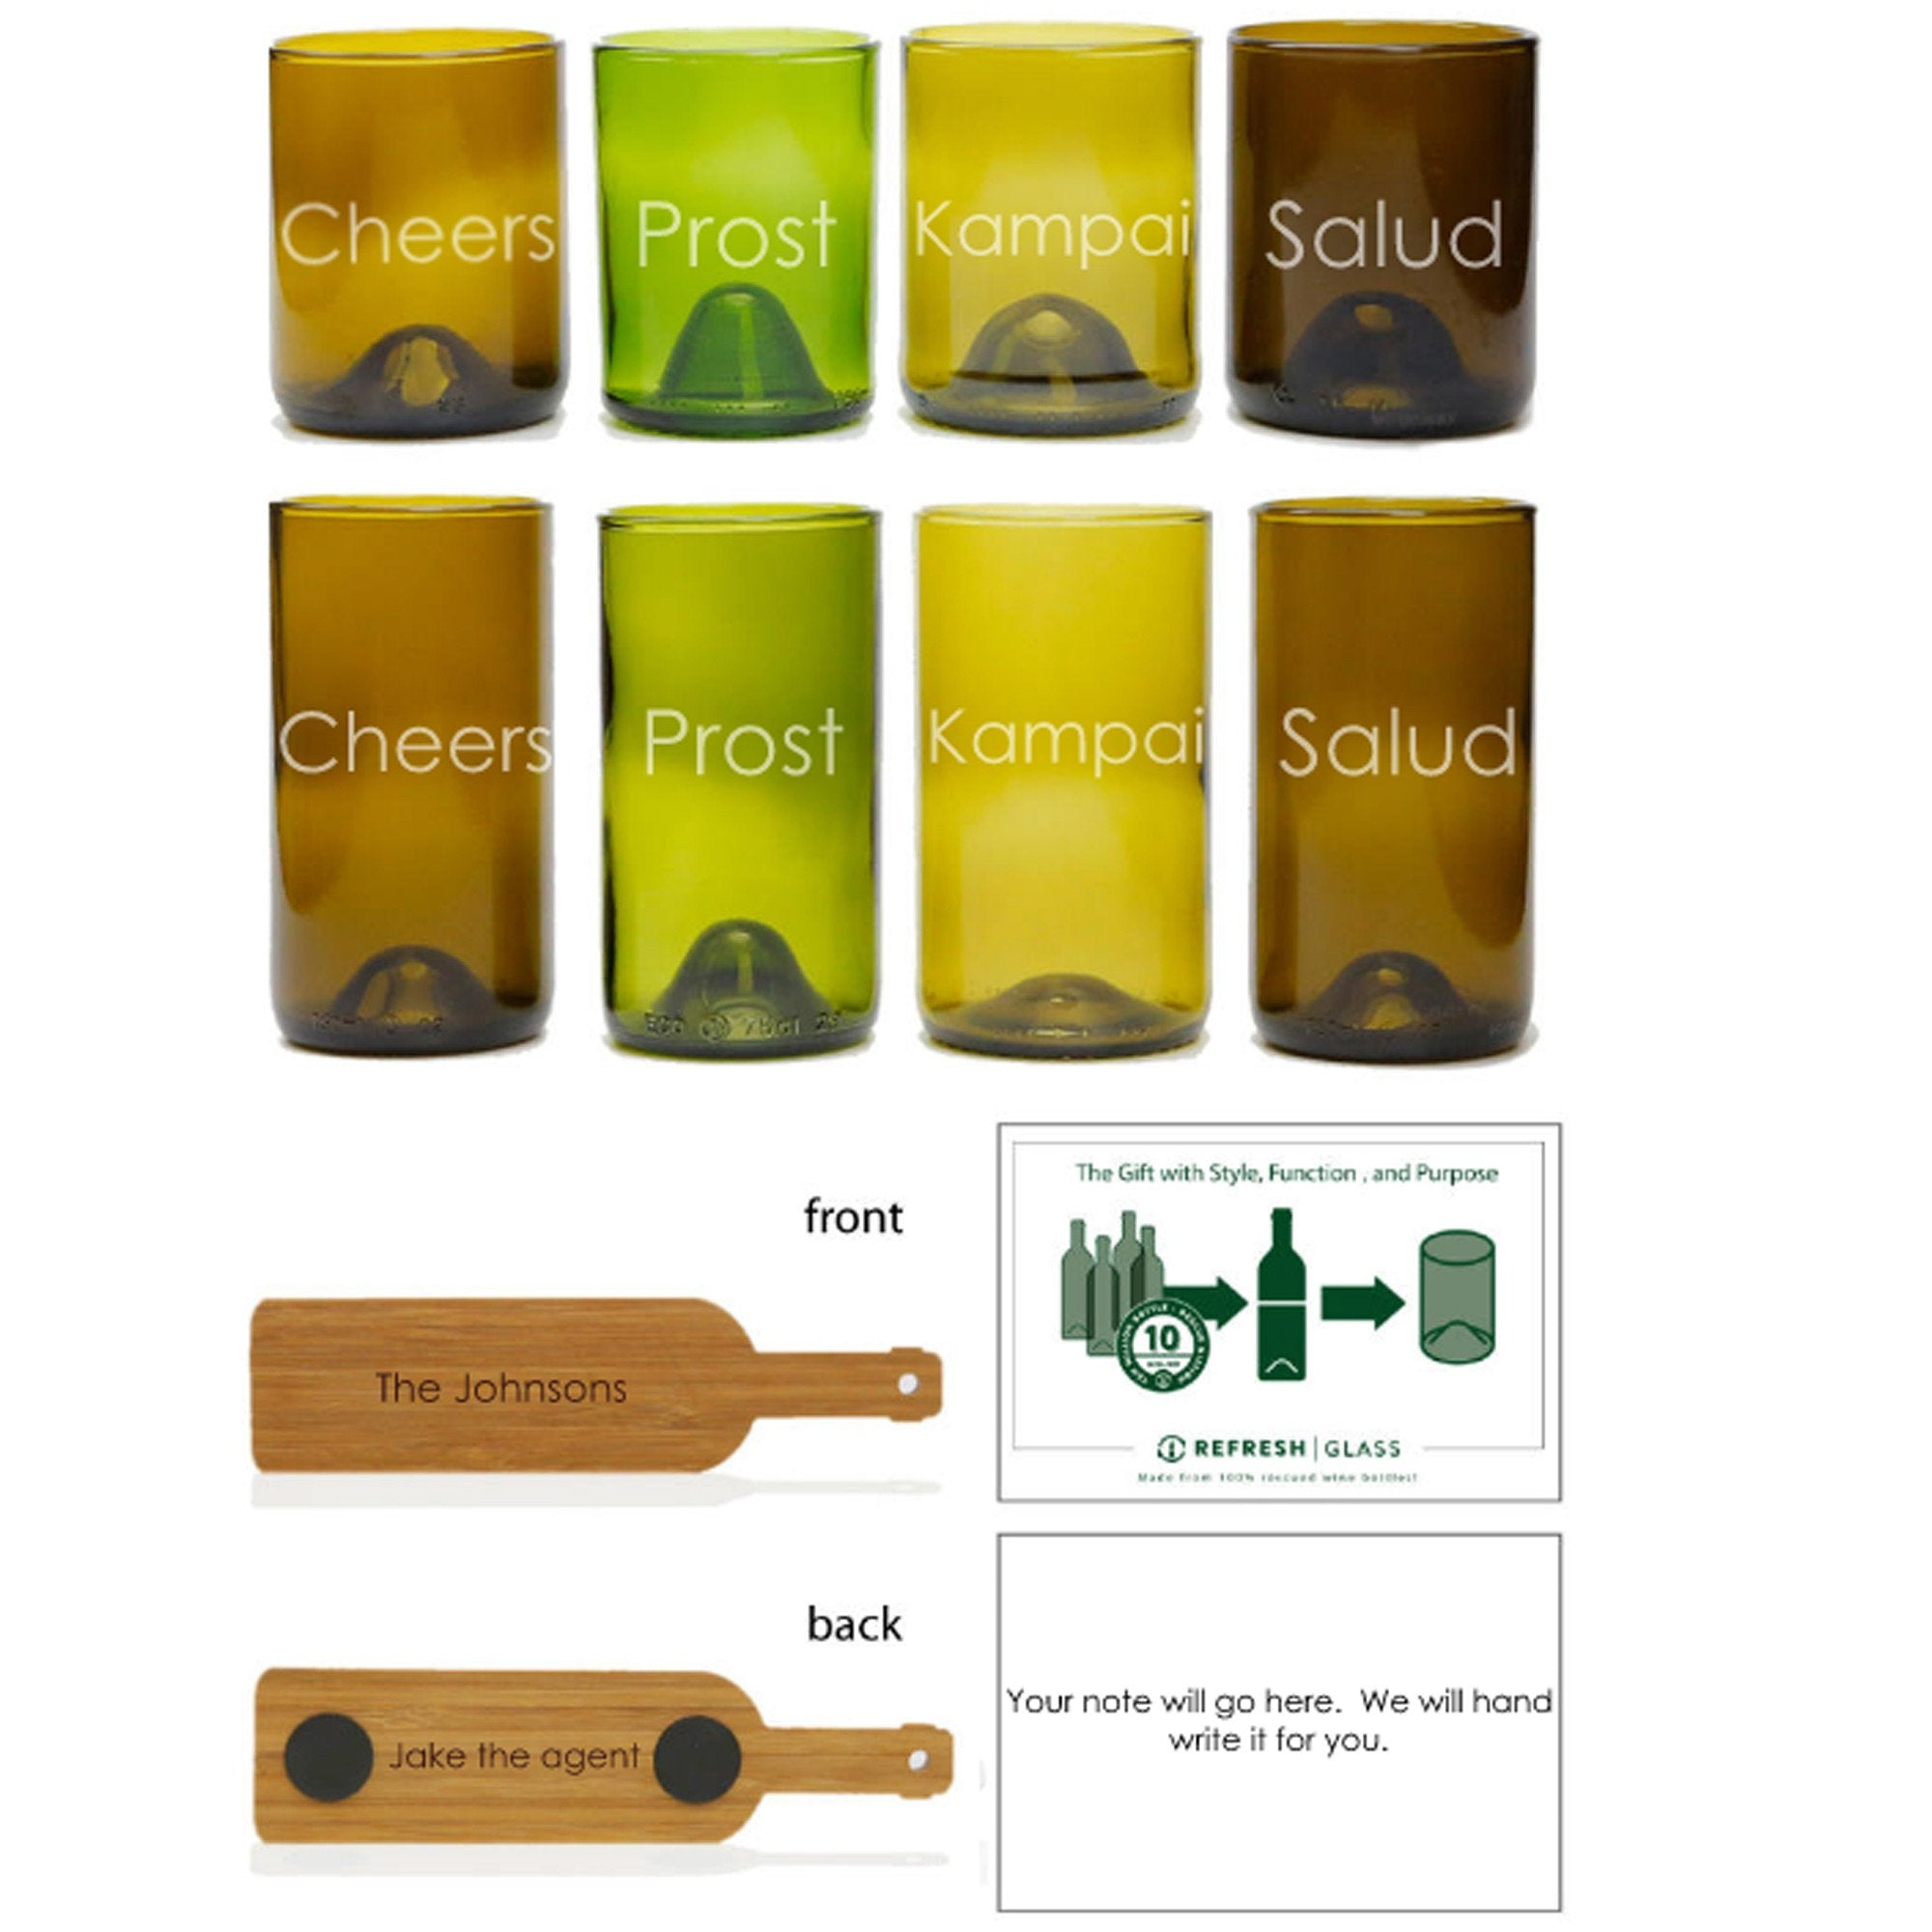 8-Glass Gift Set - Cheers-Refresh Glass